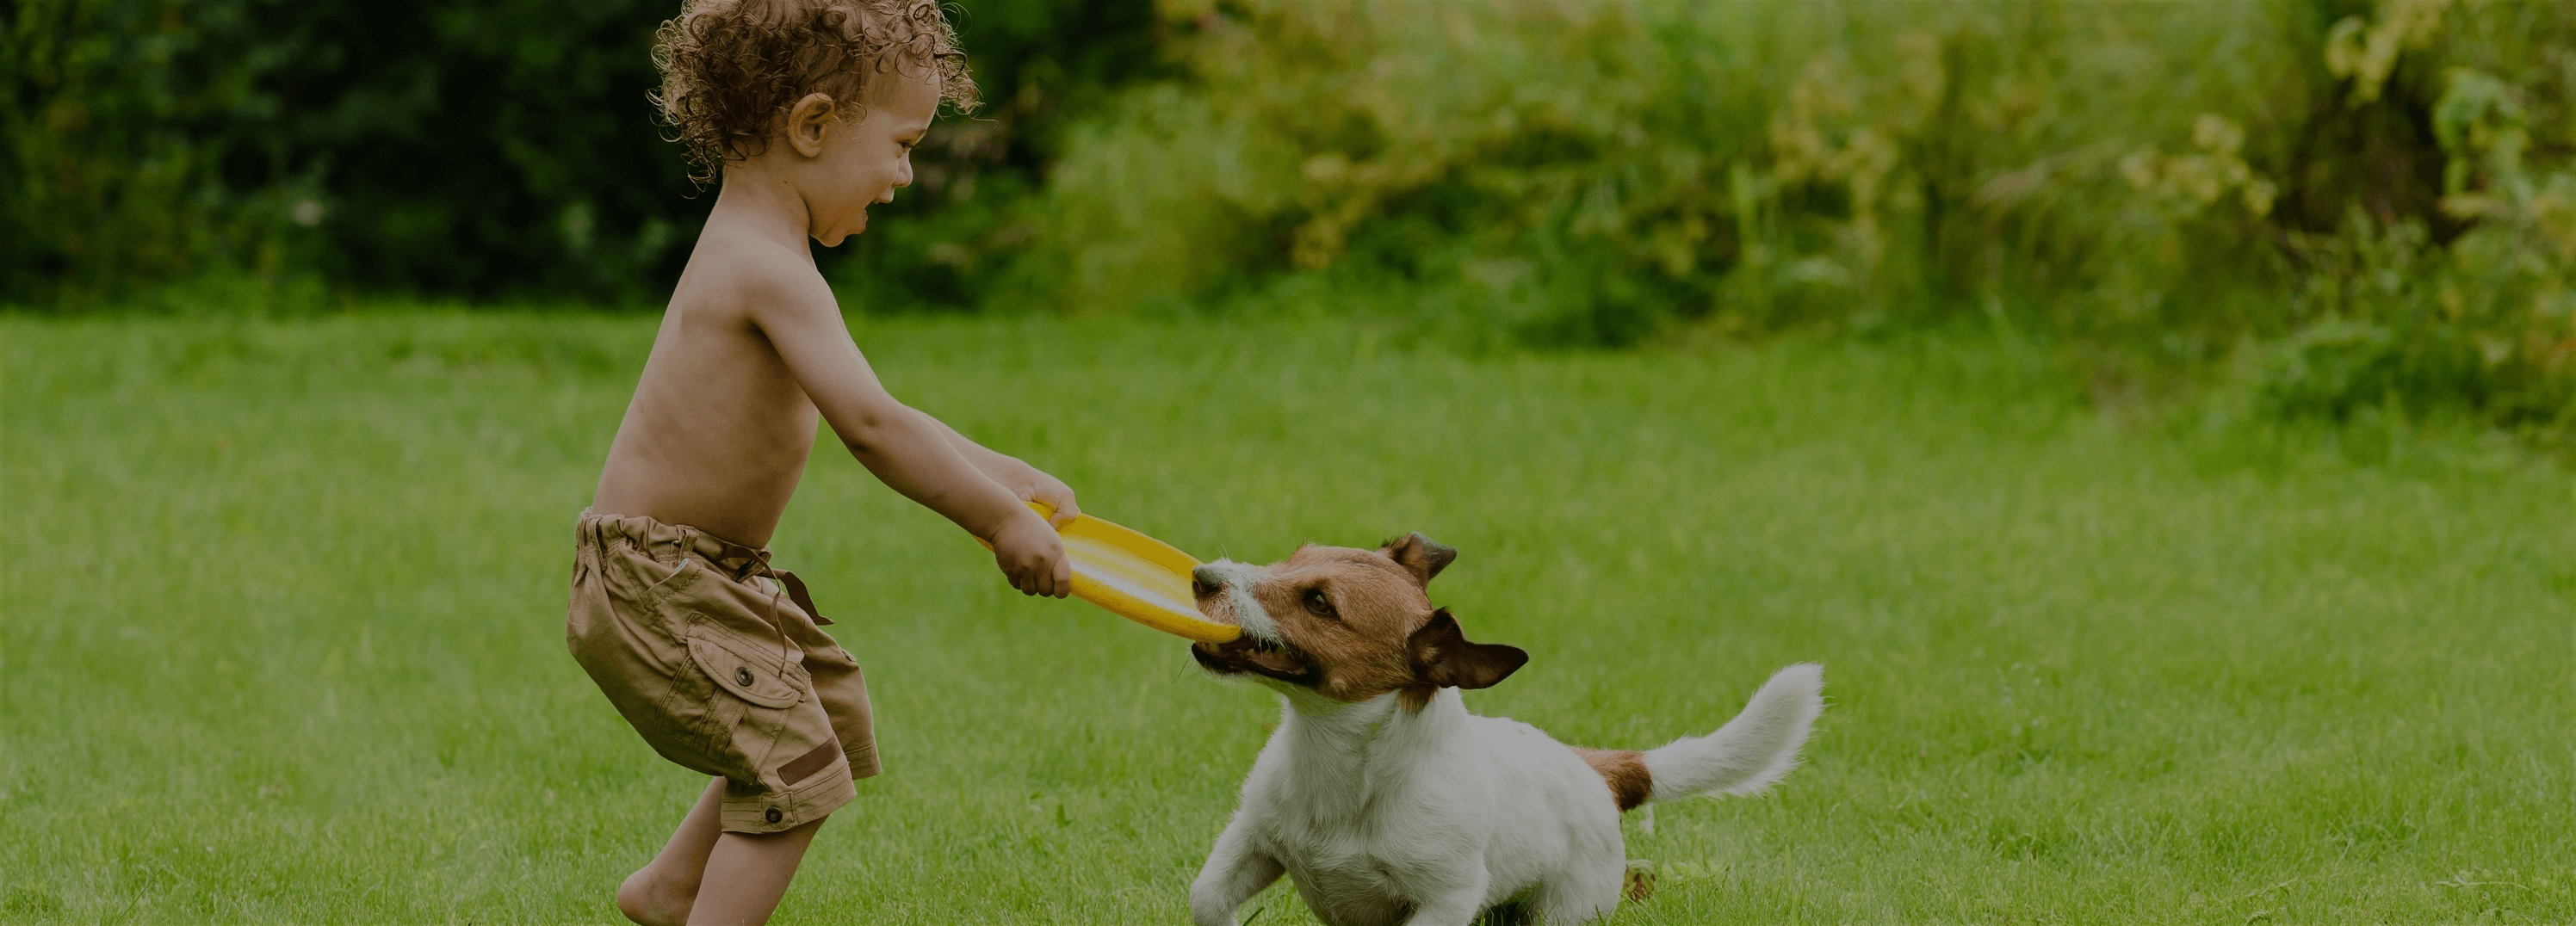 Flea & Tick Spray for Your Yard by Naturally Green